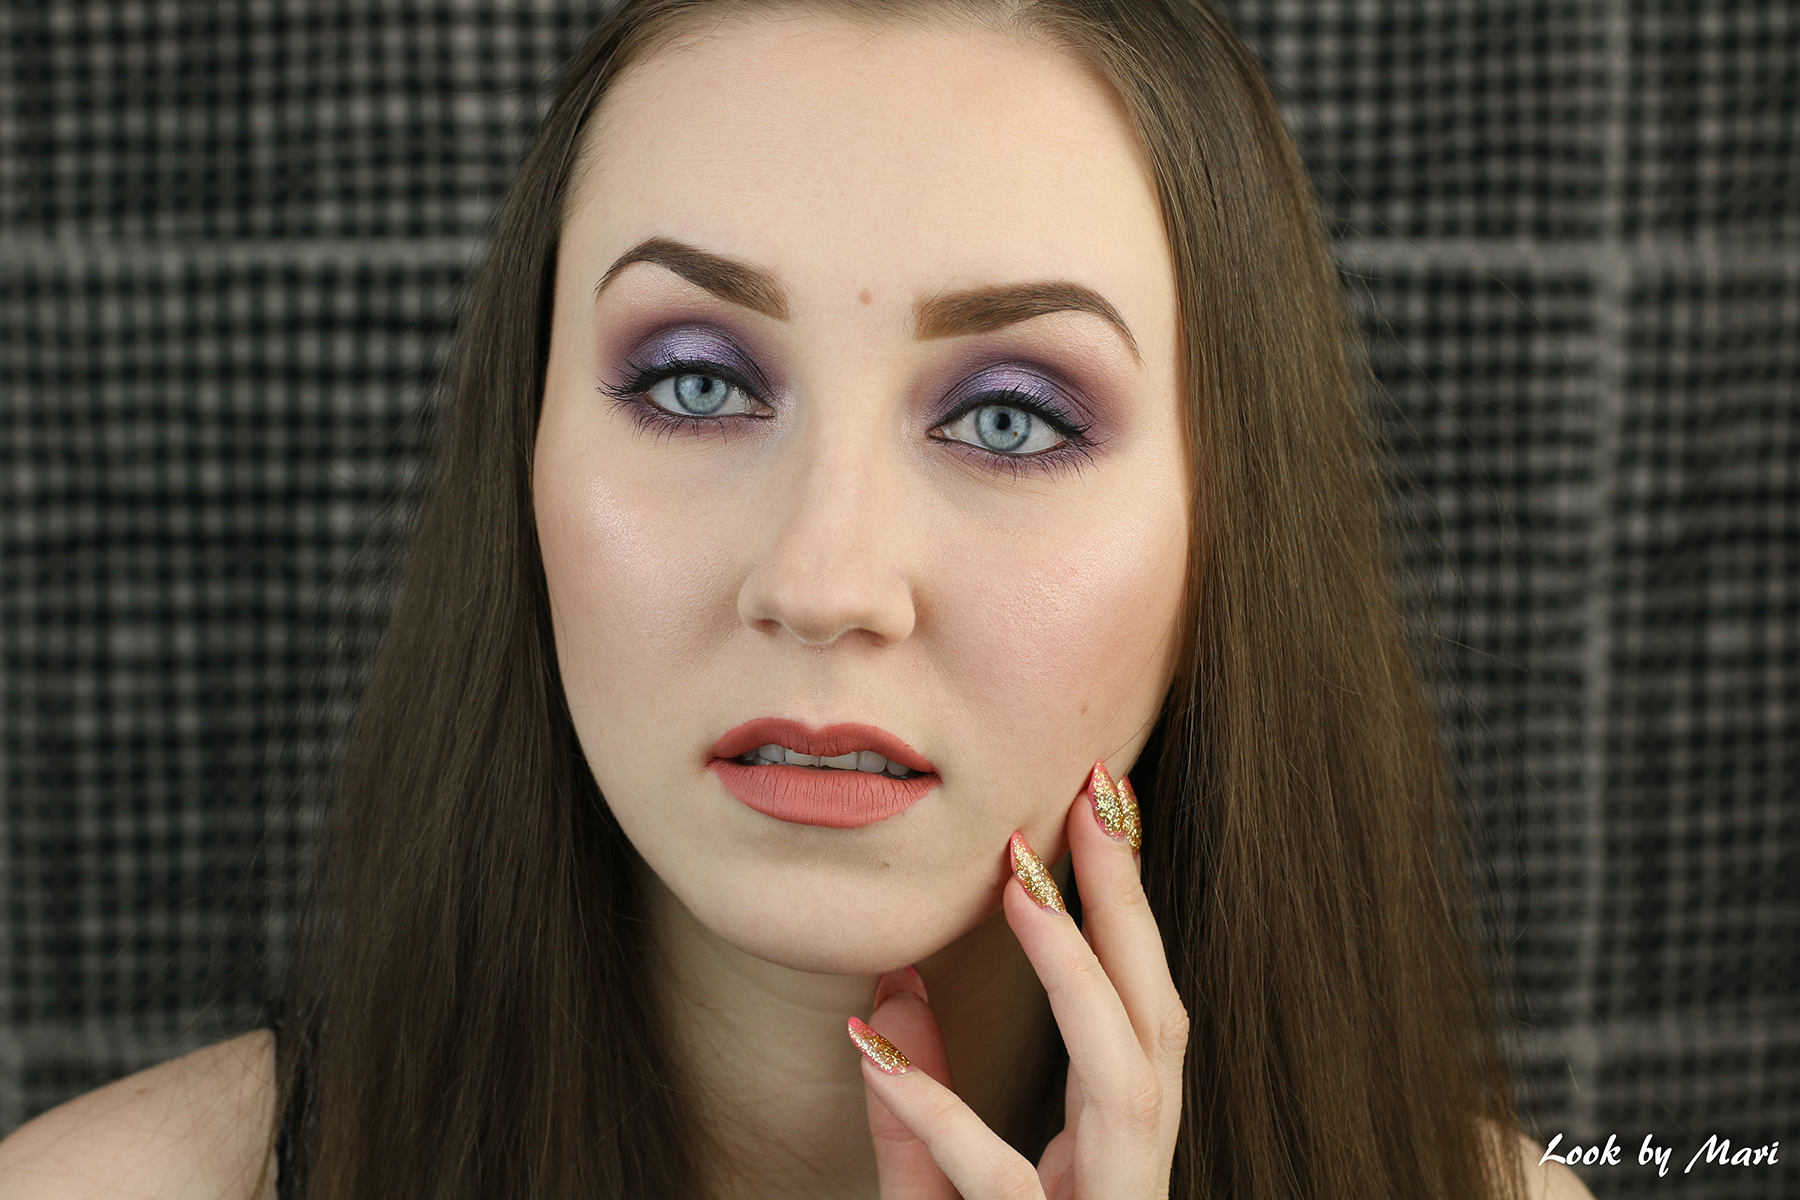 2 lilac violet dramatic smoky eye eyes colorful dark smoky eye ideas inspo tutorial